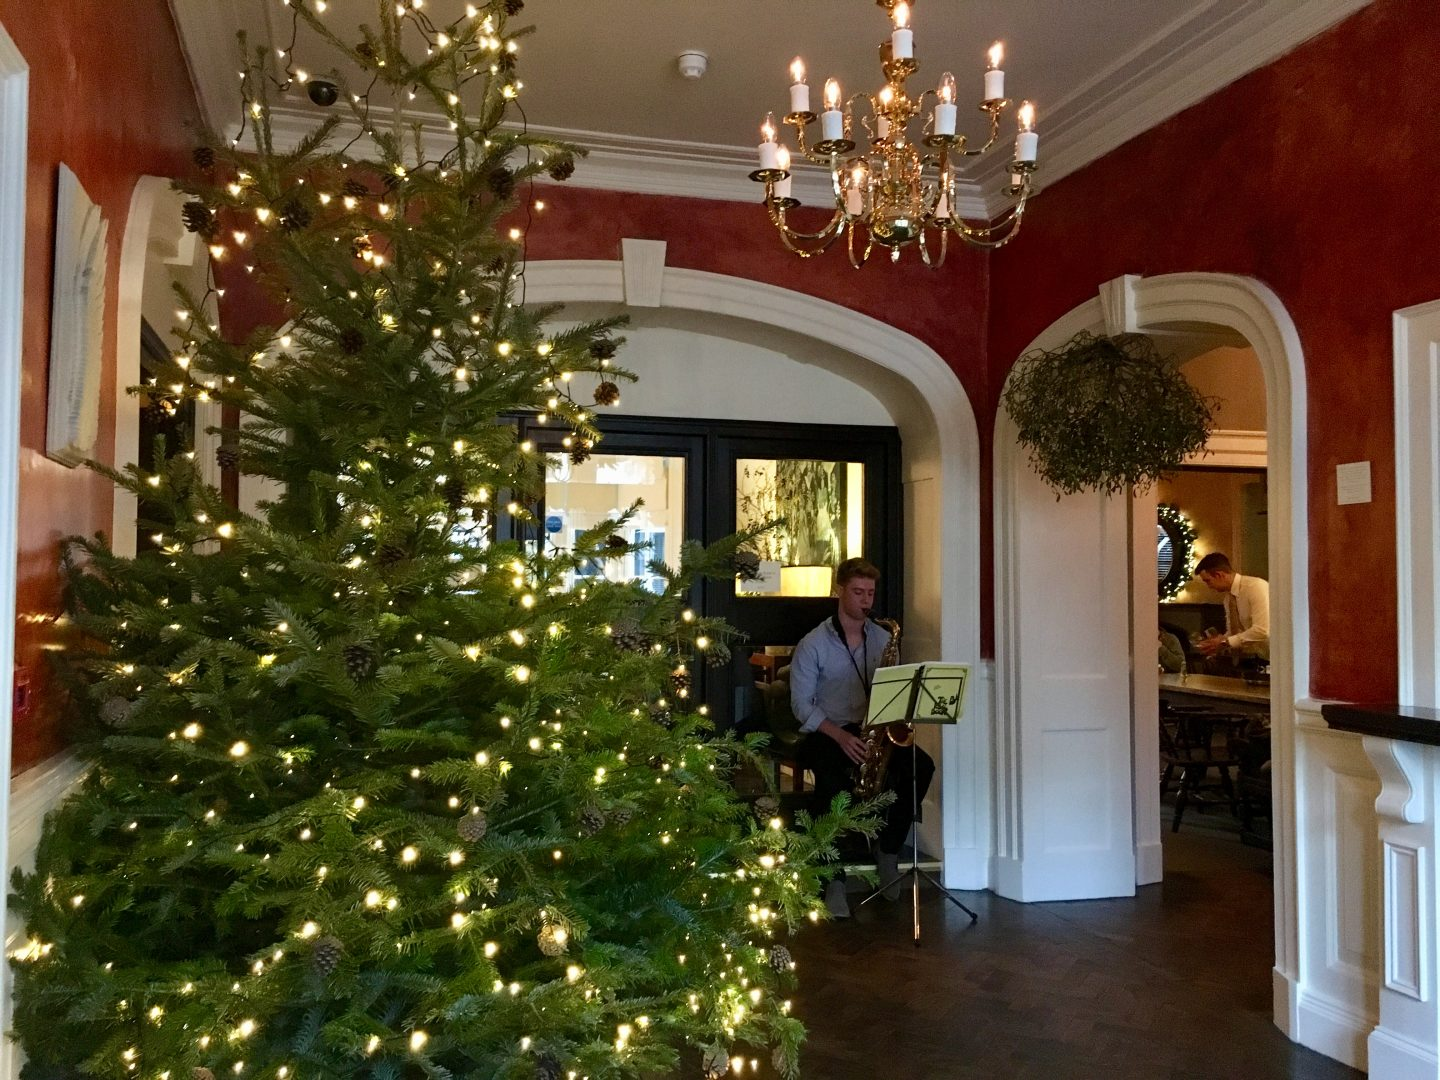 A festive stay with afternoon tea at The Angel Hotel, Abergavenny